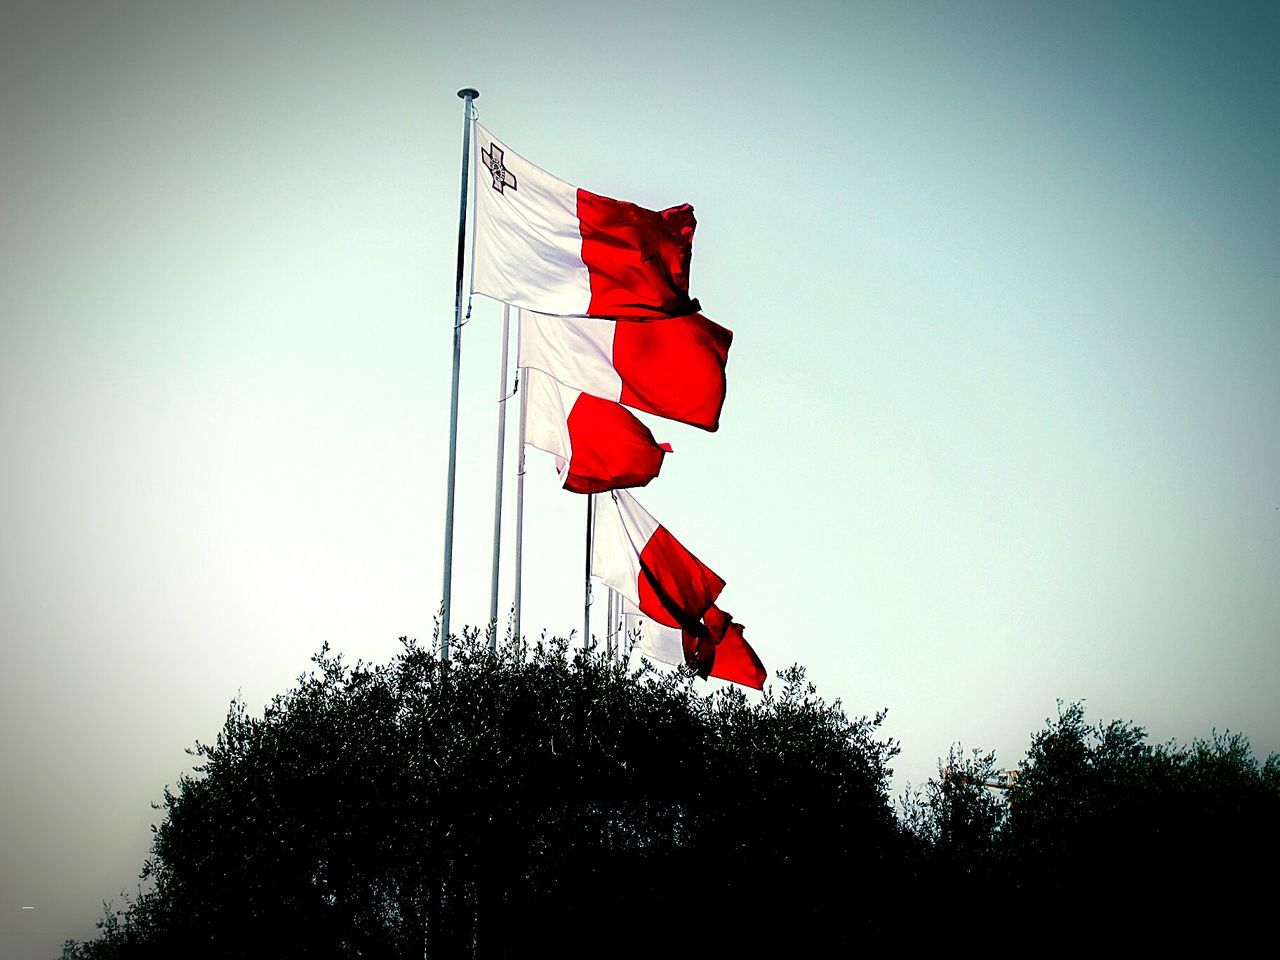 flag, tree, patriotism, low angle view, red, clear sky, no people, day, outdoors, vignette, sky, nature